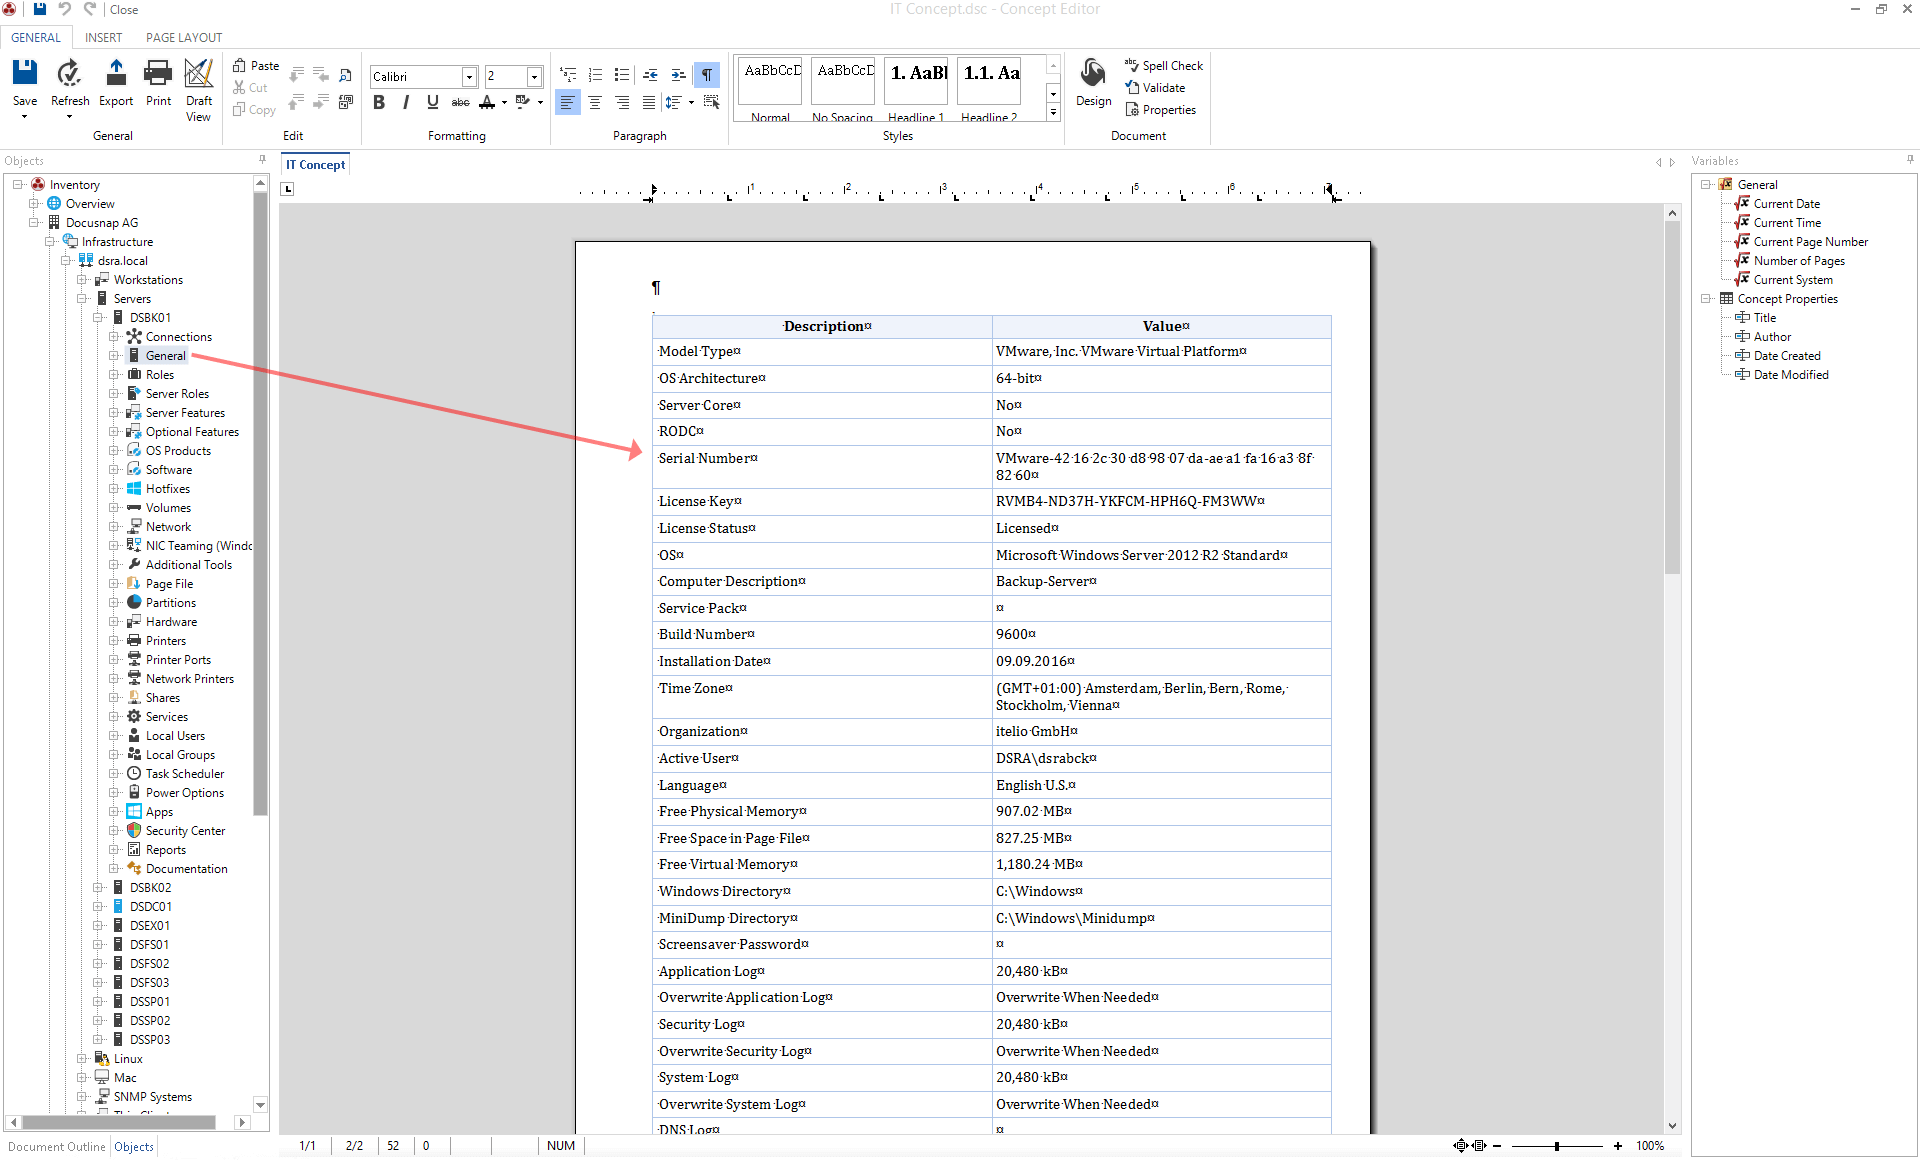 Adding a data element in IT concepts